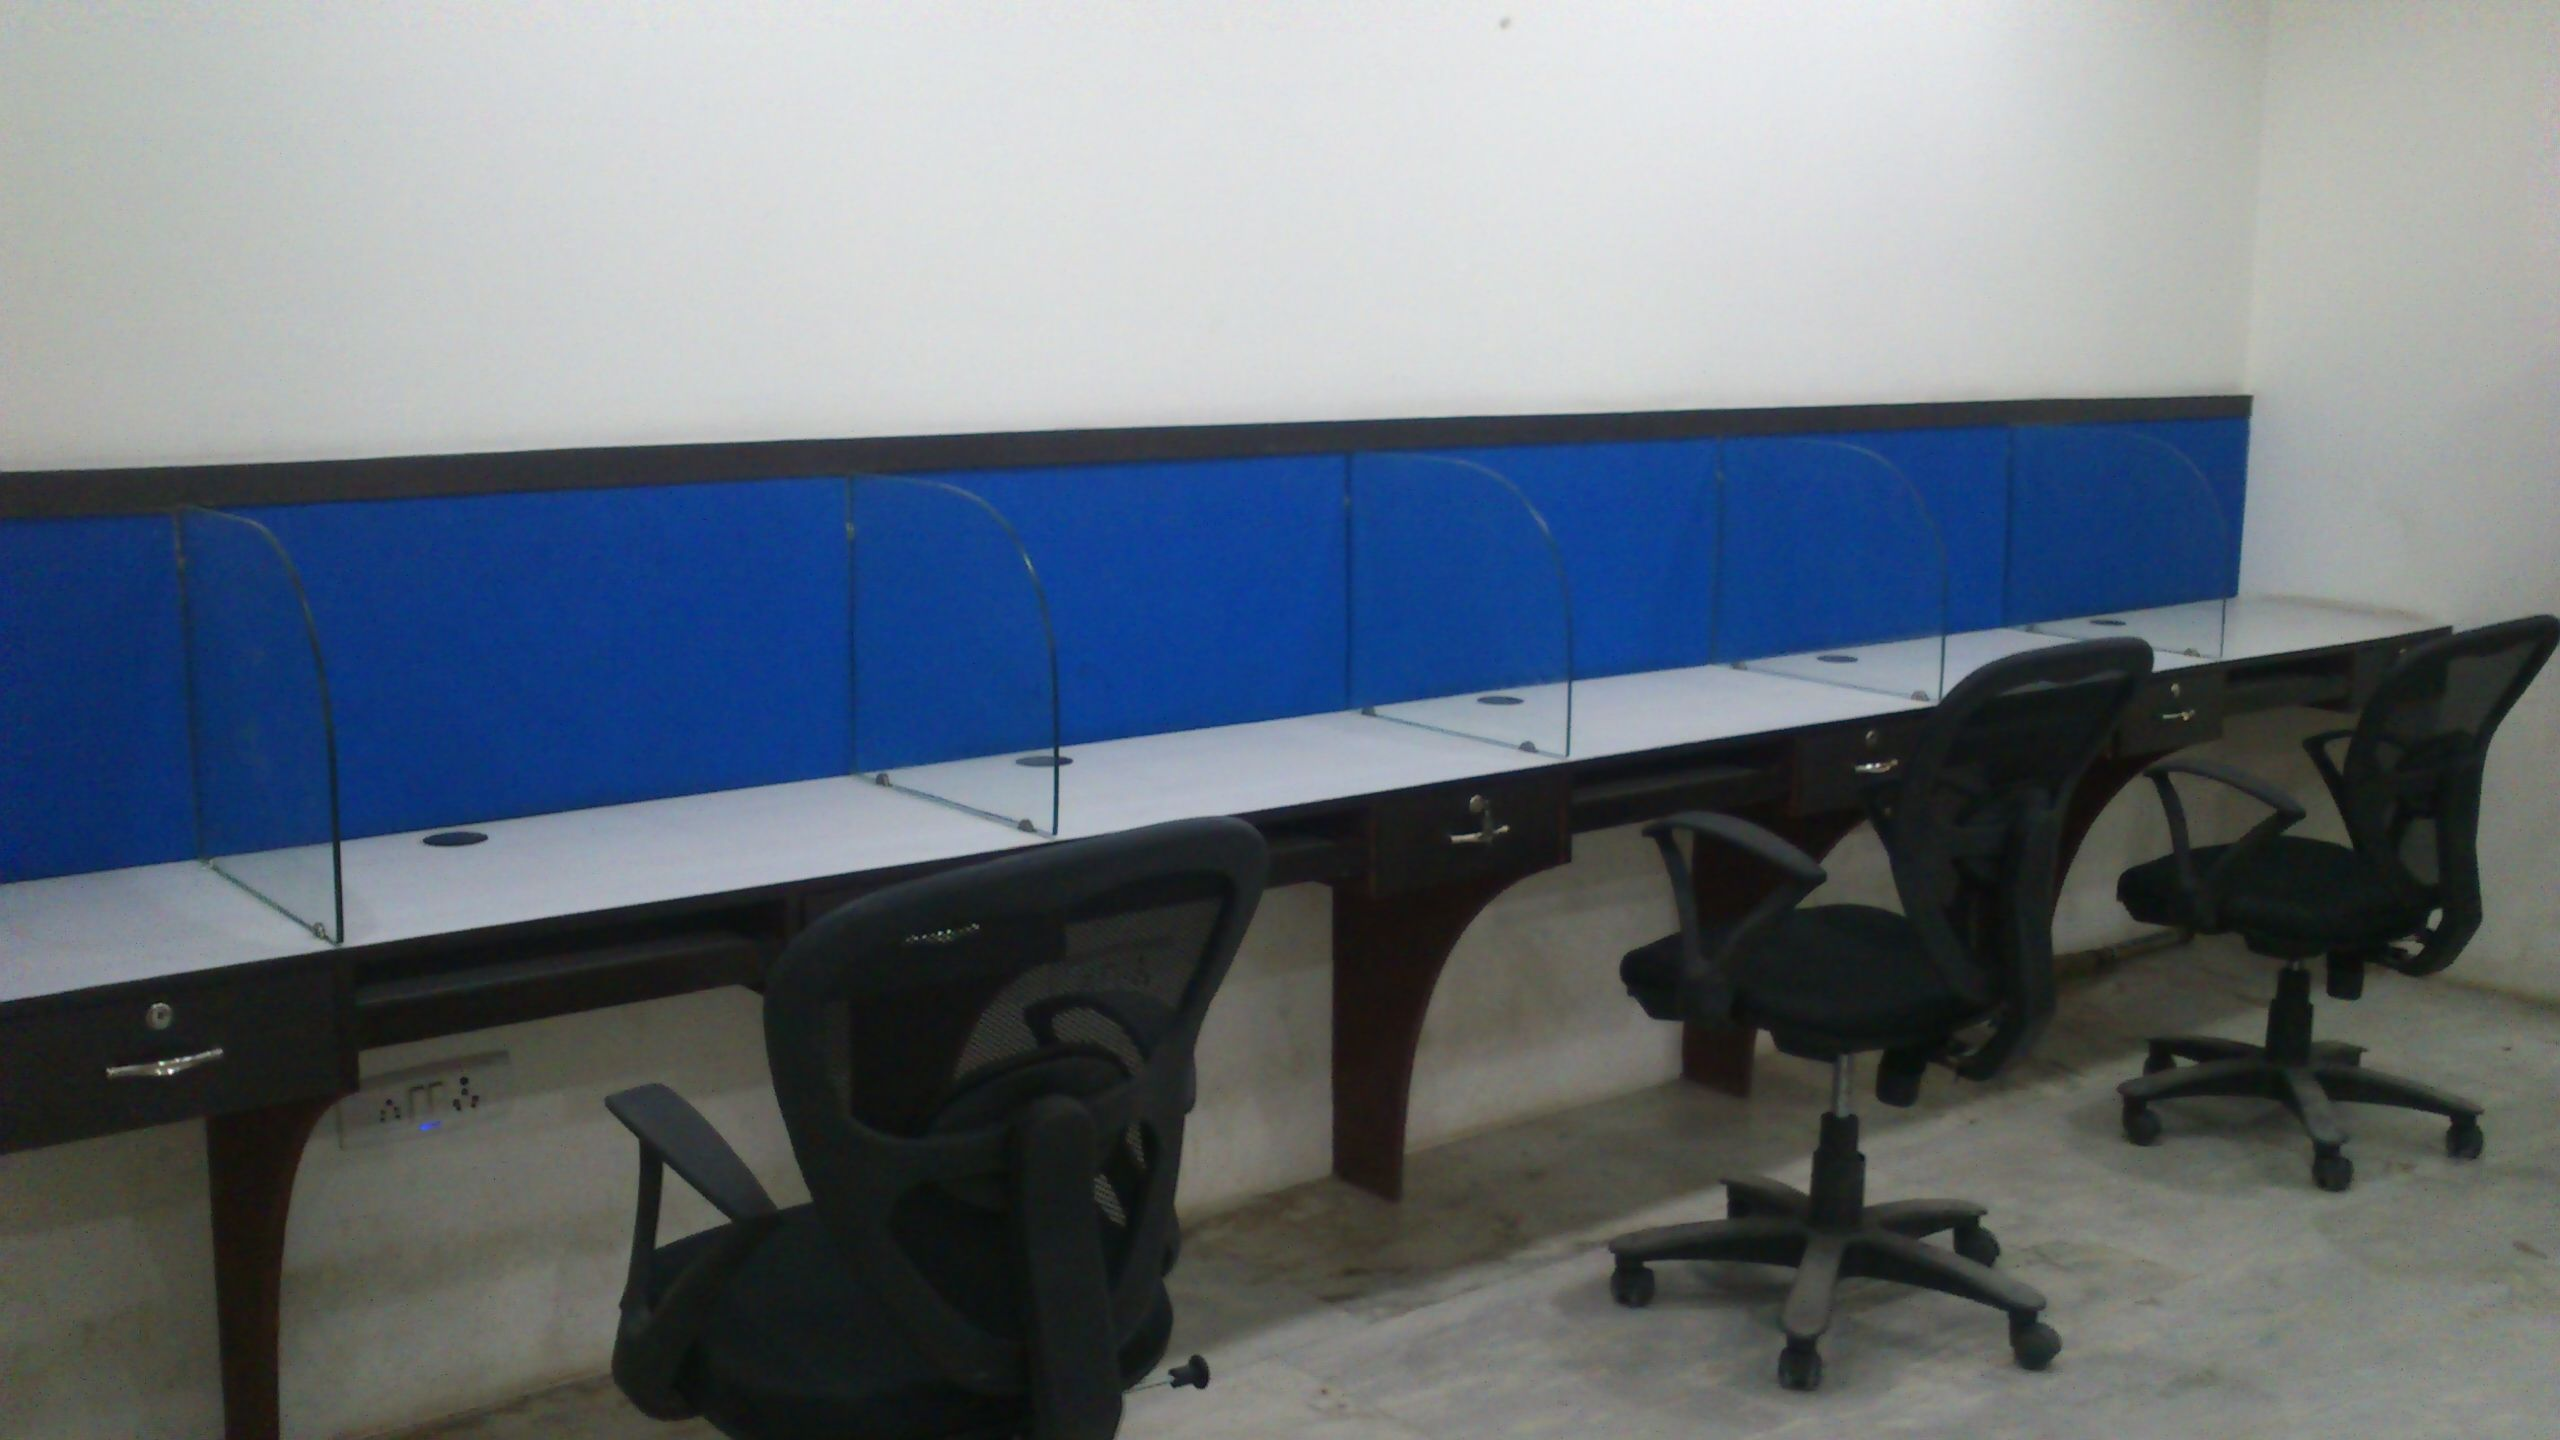 The Office Spaces Given By Vds Technologies Business Center Are